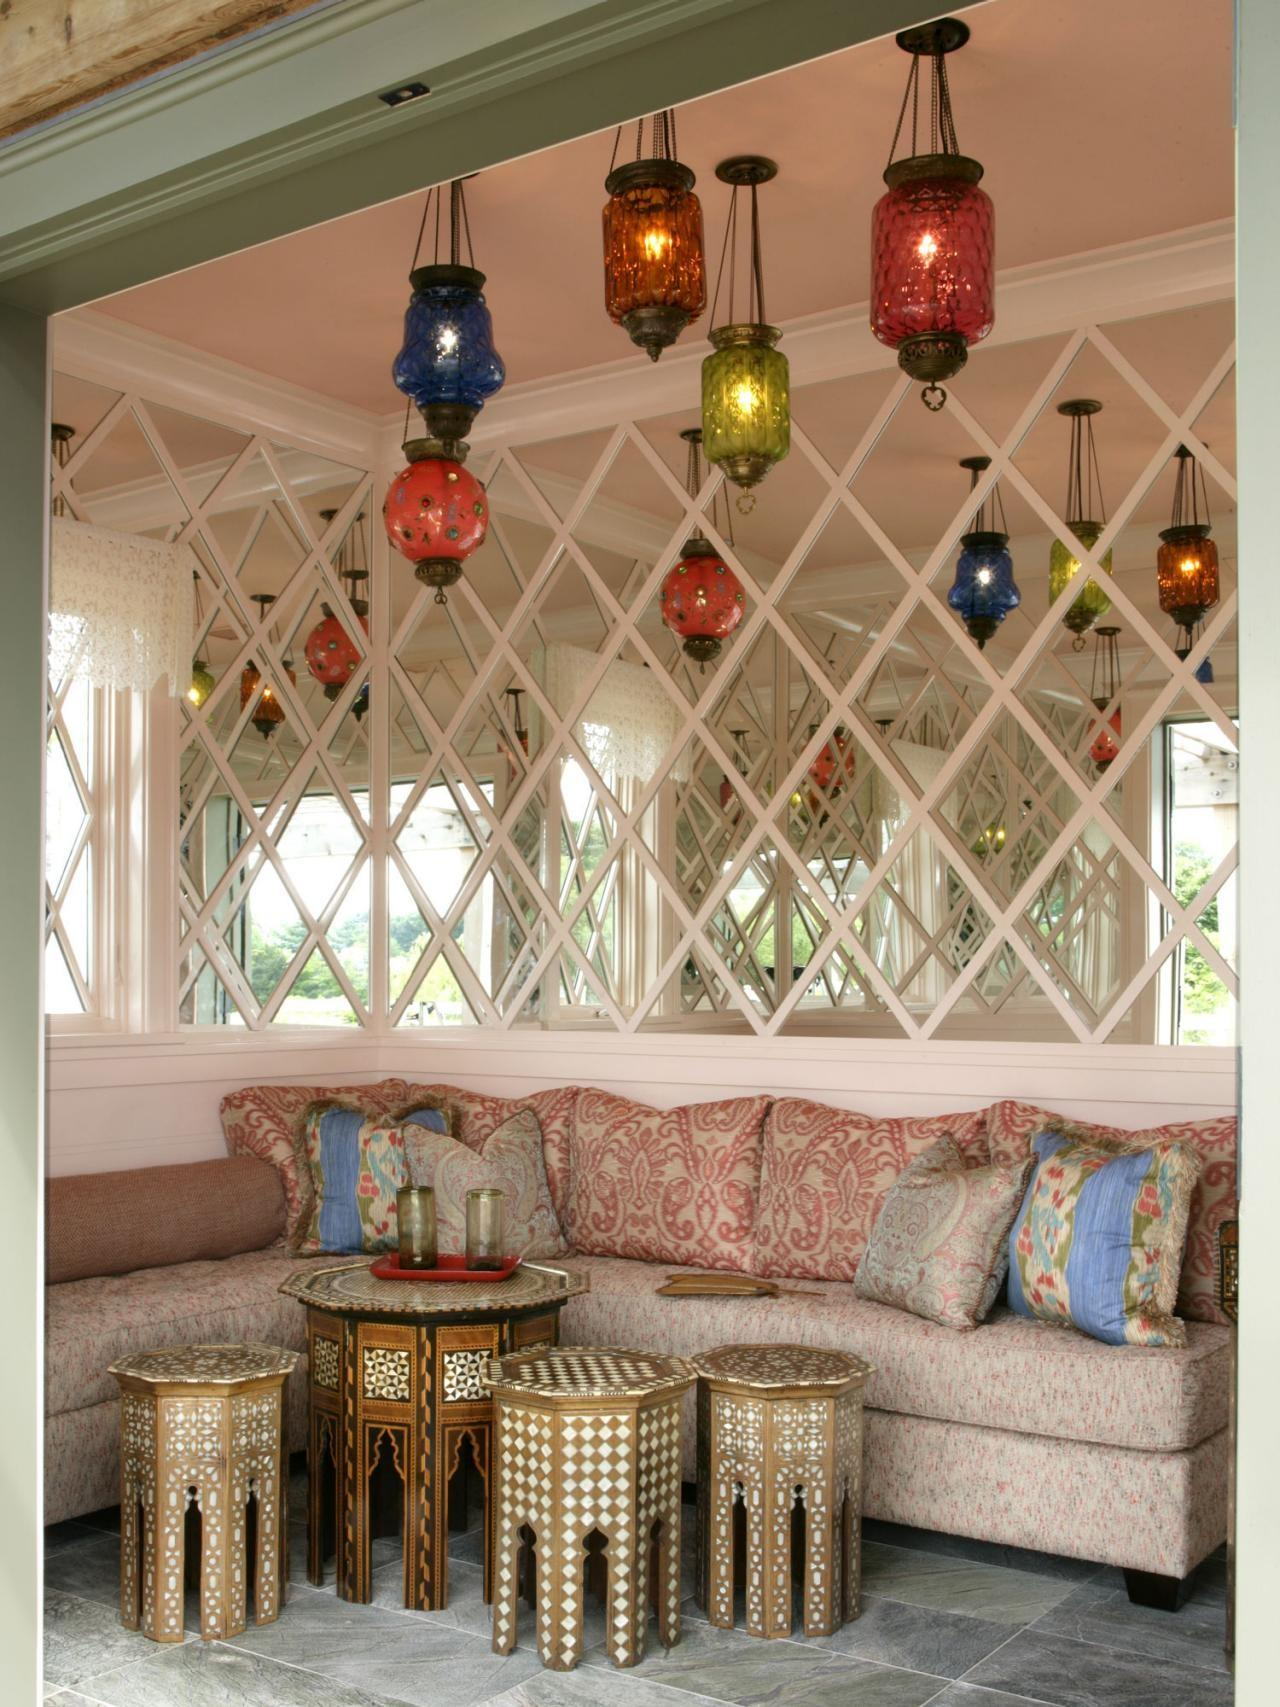 Moroccan Decor Ideas Home Interior Design Styles